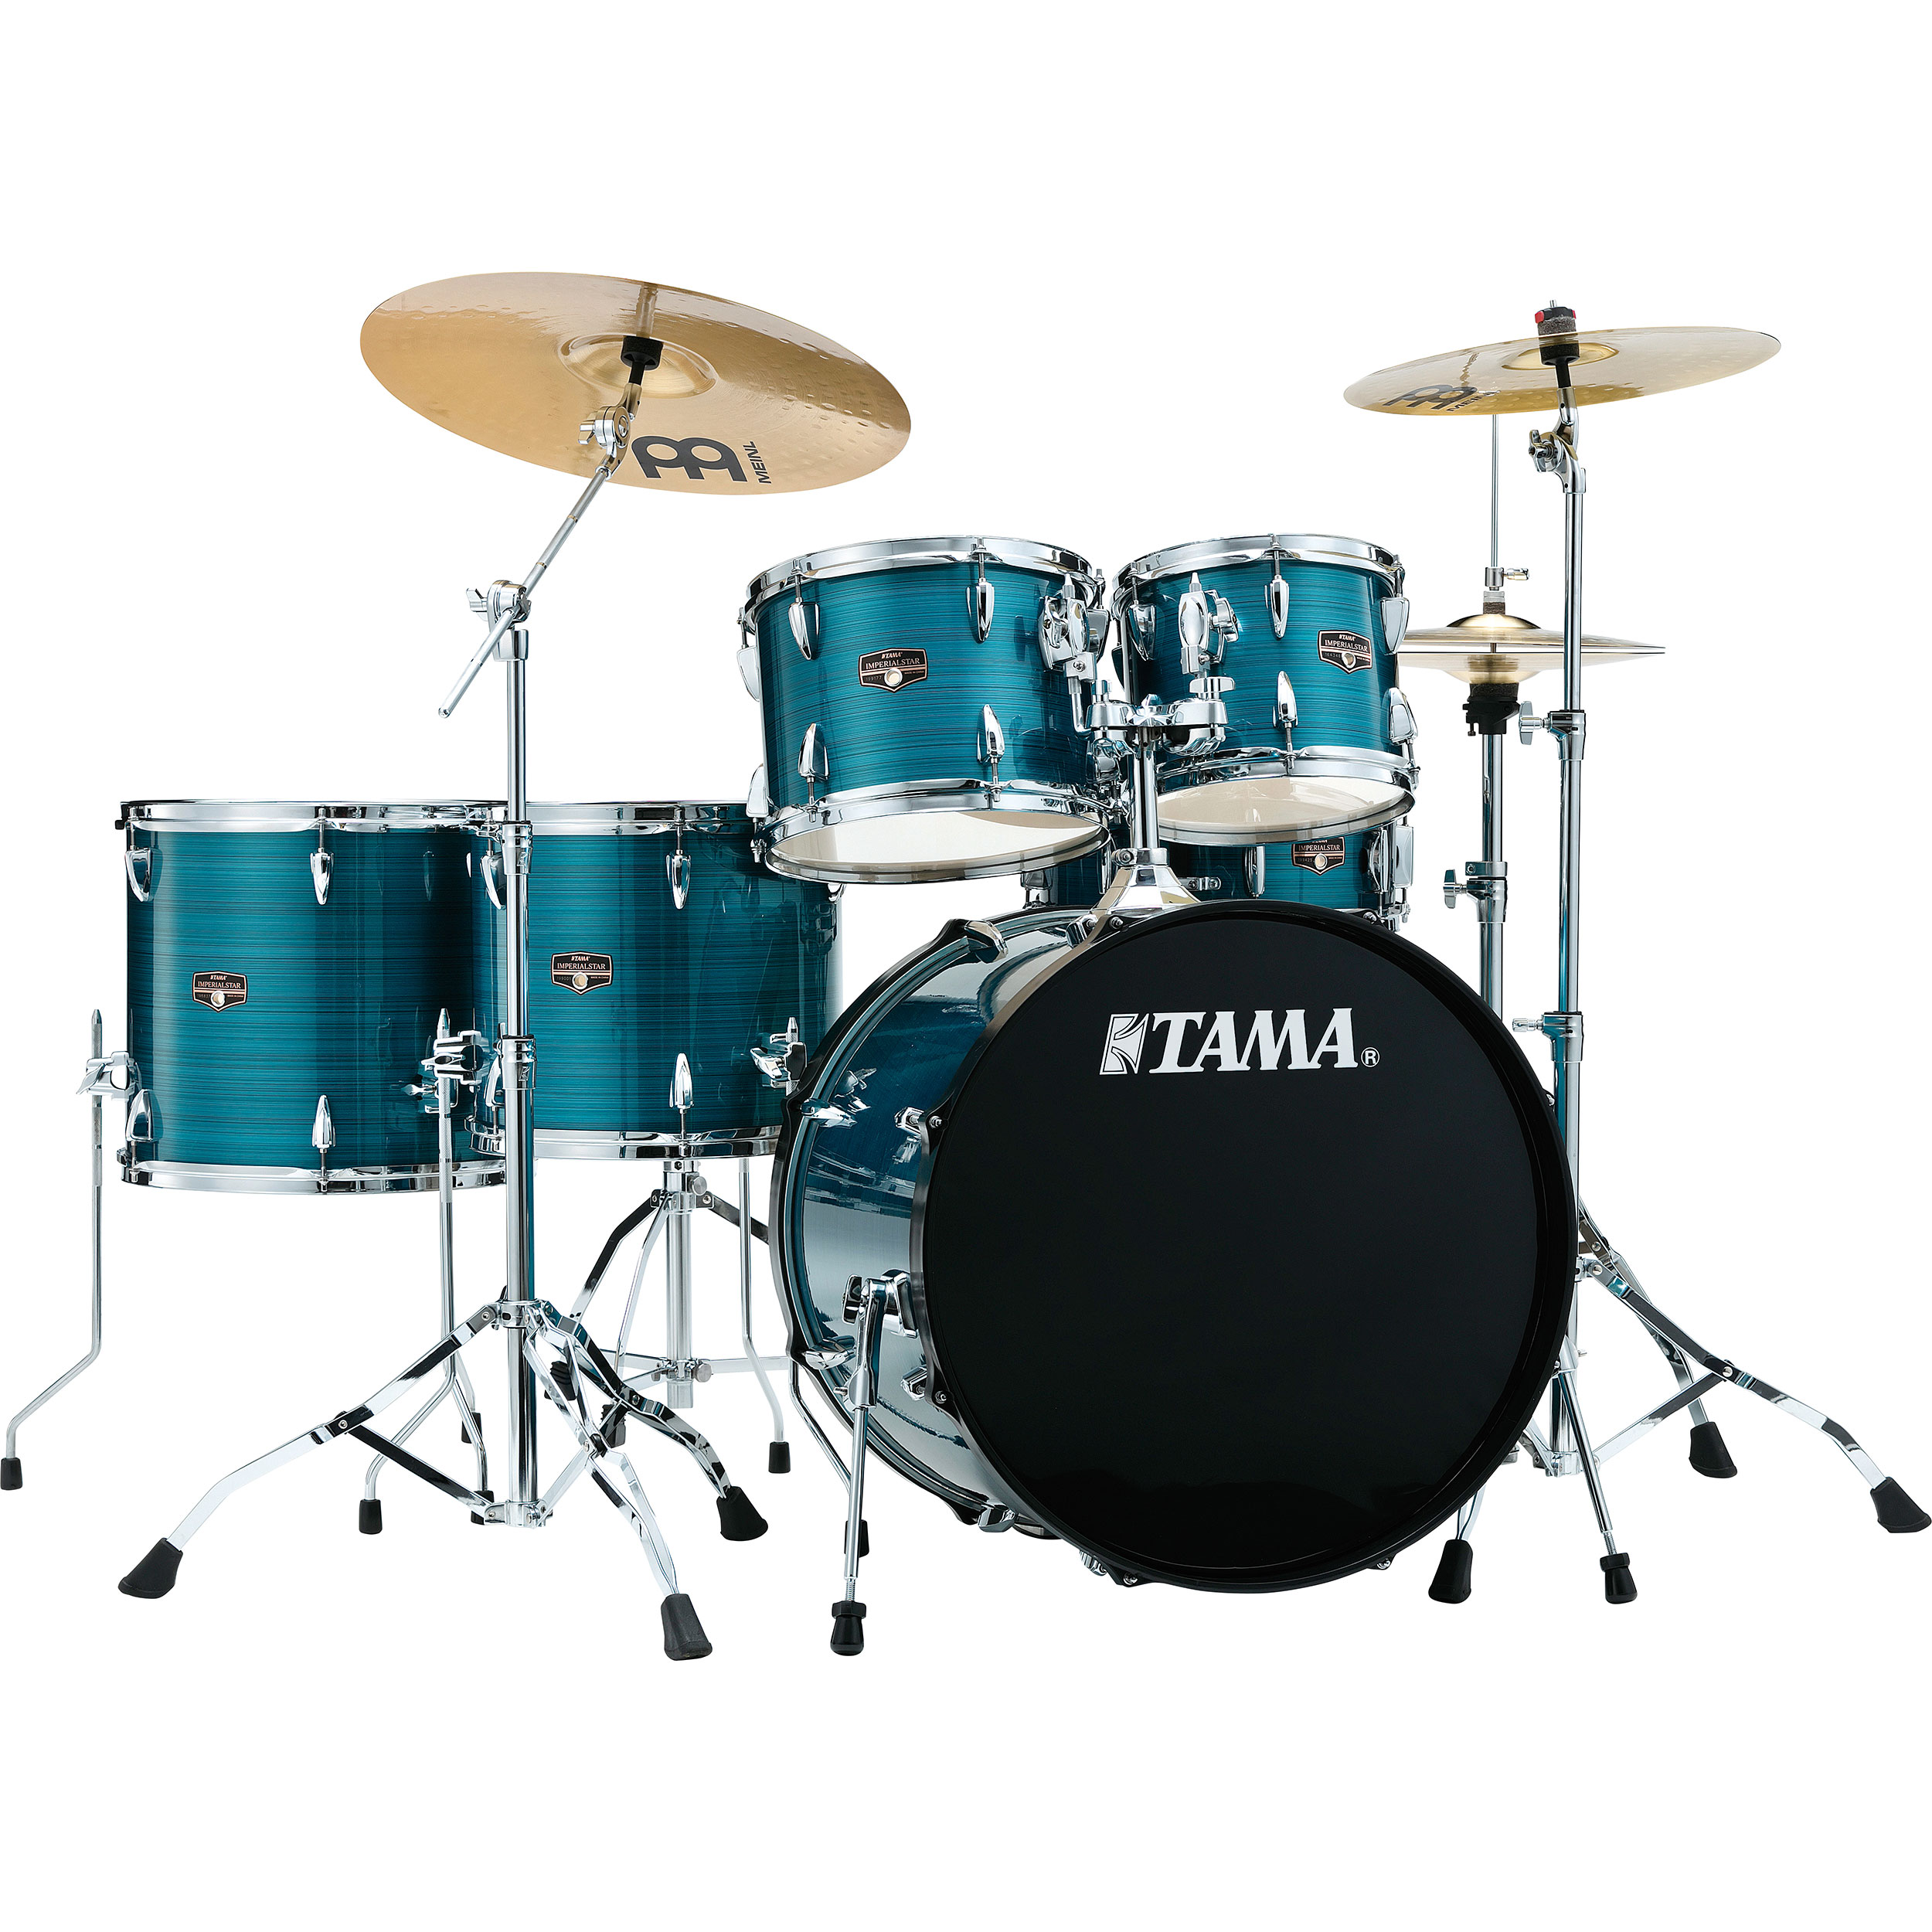 "Tama Imperialstar 6-Piece Drum Set with Hardware and Cymbals (22"" Bass, 10/12/14/16"" Toms, 14"" Snare)"